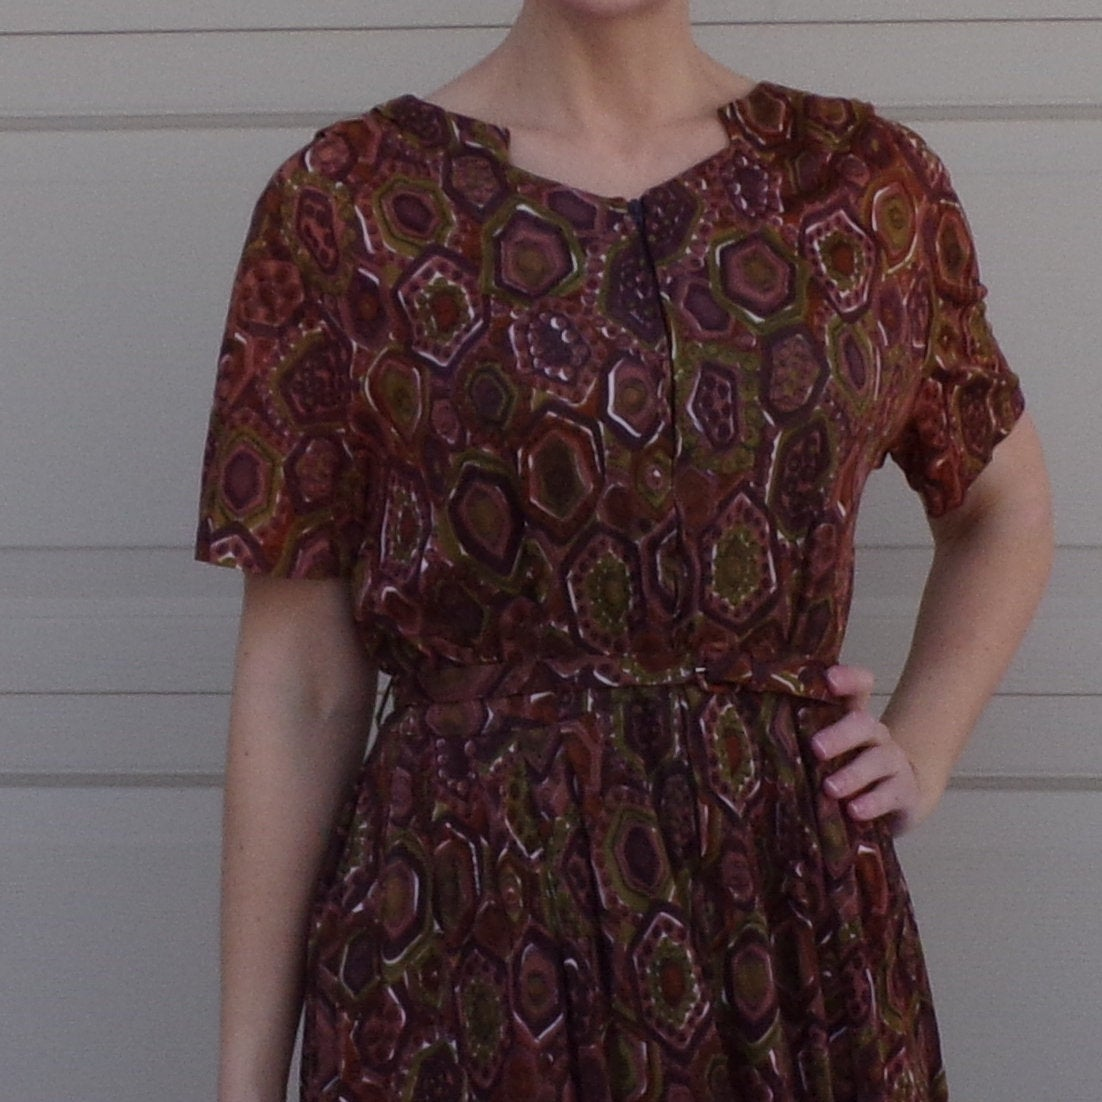 GEOMETRIC PRINT jersey DRESS with belt olive brown M L (A8)